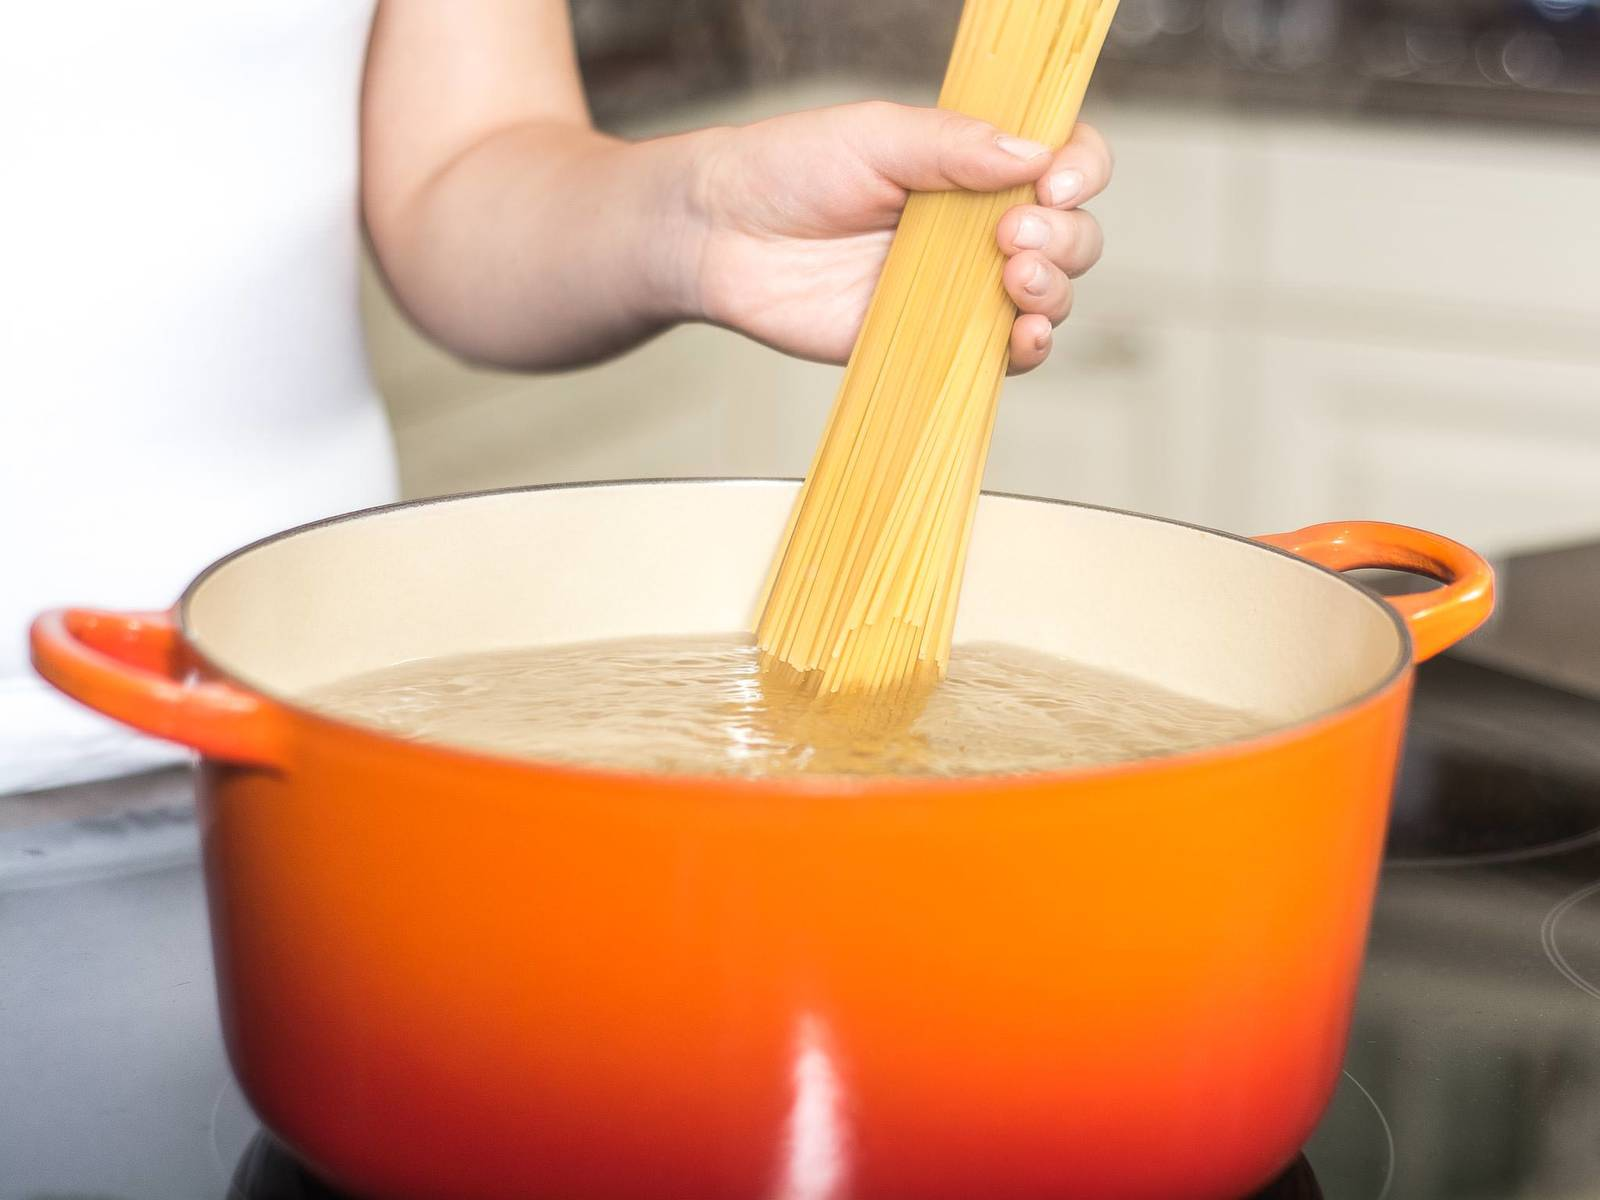 Cook the spaghetti, according to package instructions, in salted boiling water for approx. 9 - 12 min. until al dente. Drain the water and set pasta aside.